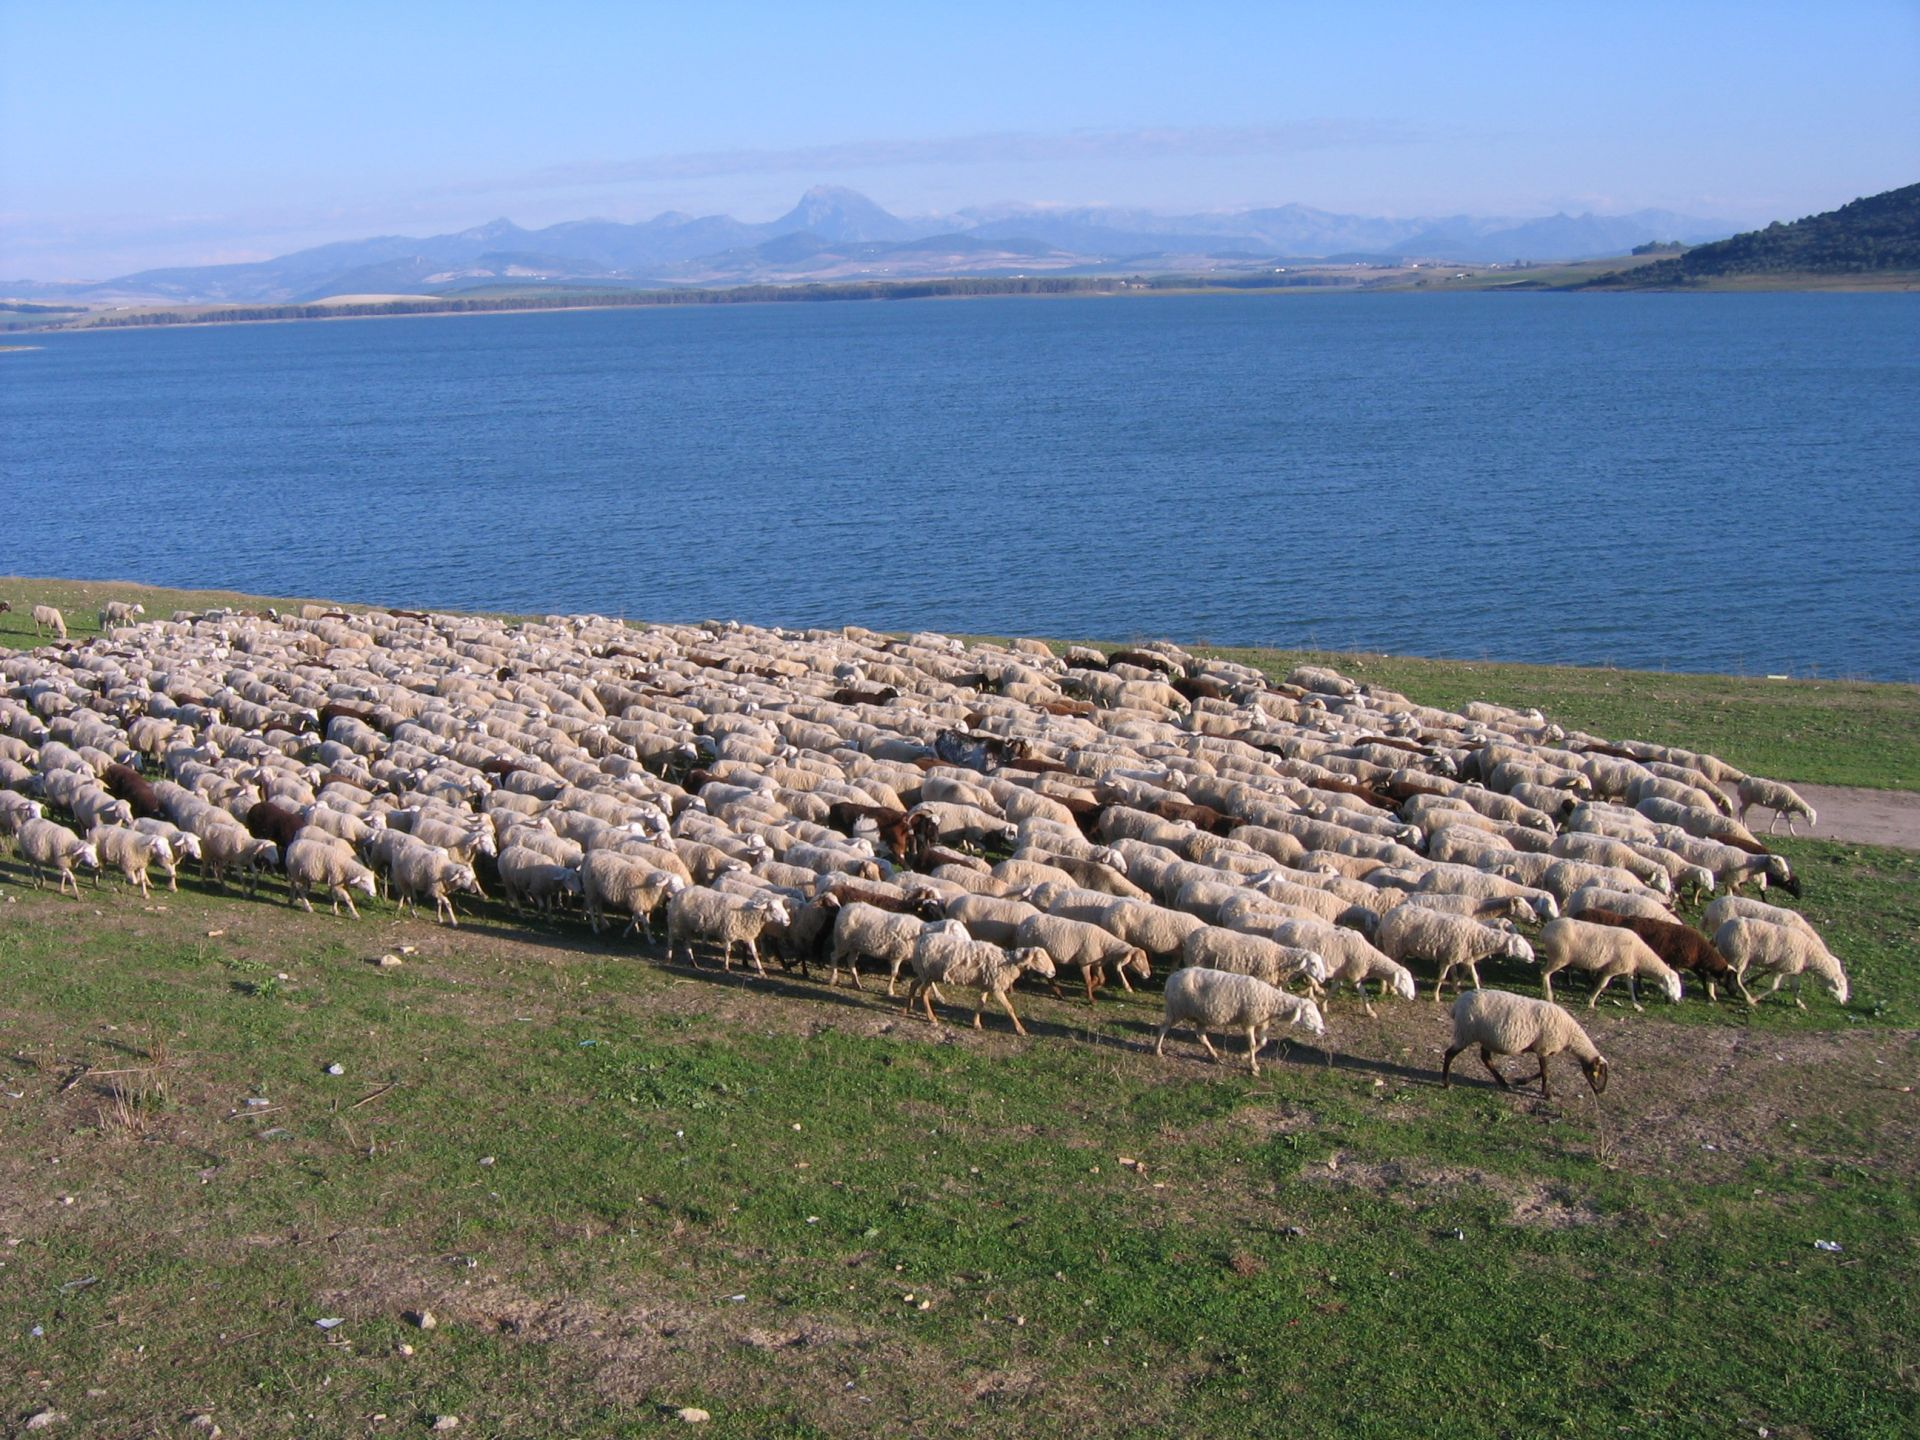 sheep,pastor,flock,sheep,animal,water,horizon,landscape,mountain,walk,path